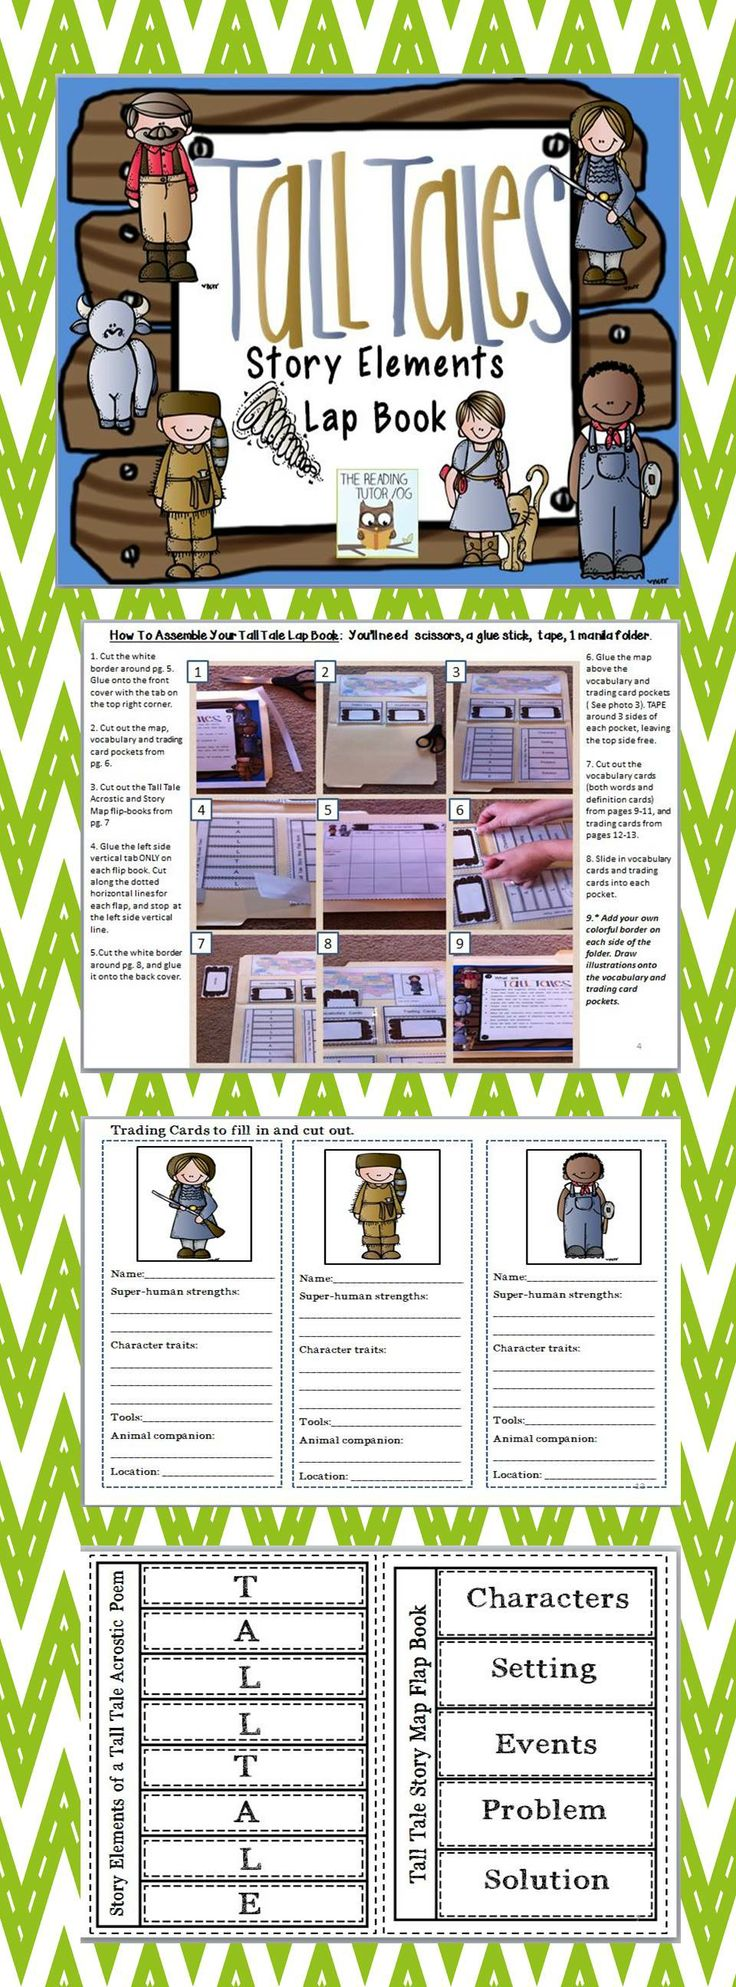 teresabeights unit 7 assignment Vocab unit 1 practice learning goal: l86 acquire and use accurately grade-appropriate general academic and domain-specific words and phrases 8rl3 analyze how particular lines of dialogue or incidents in a story or drama propel the action, reveal aspects of a character, or provoke a decision.